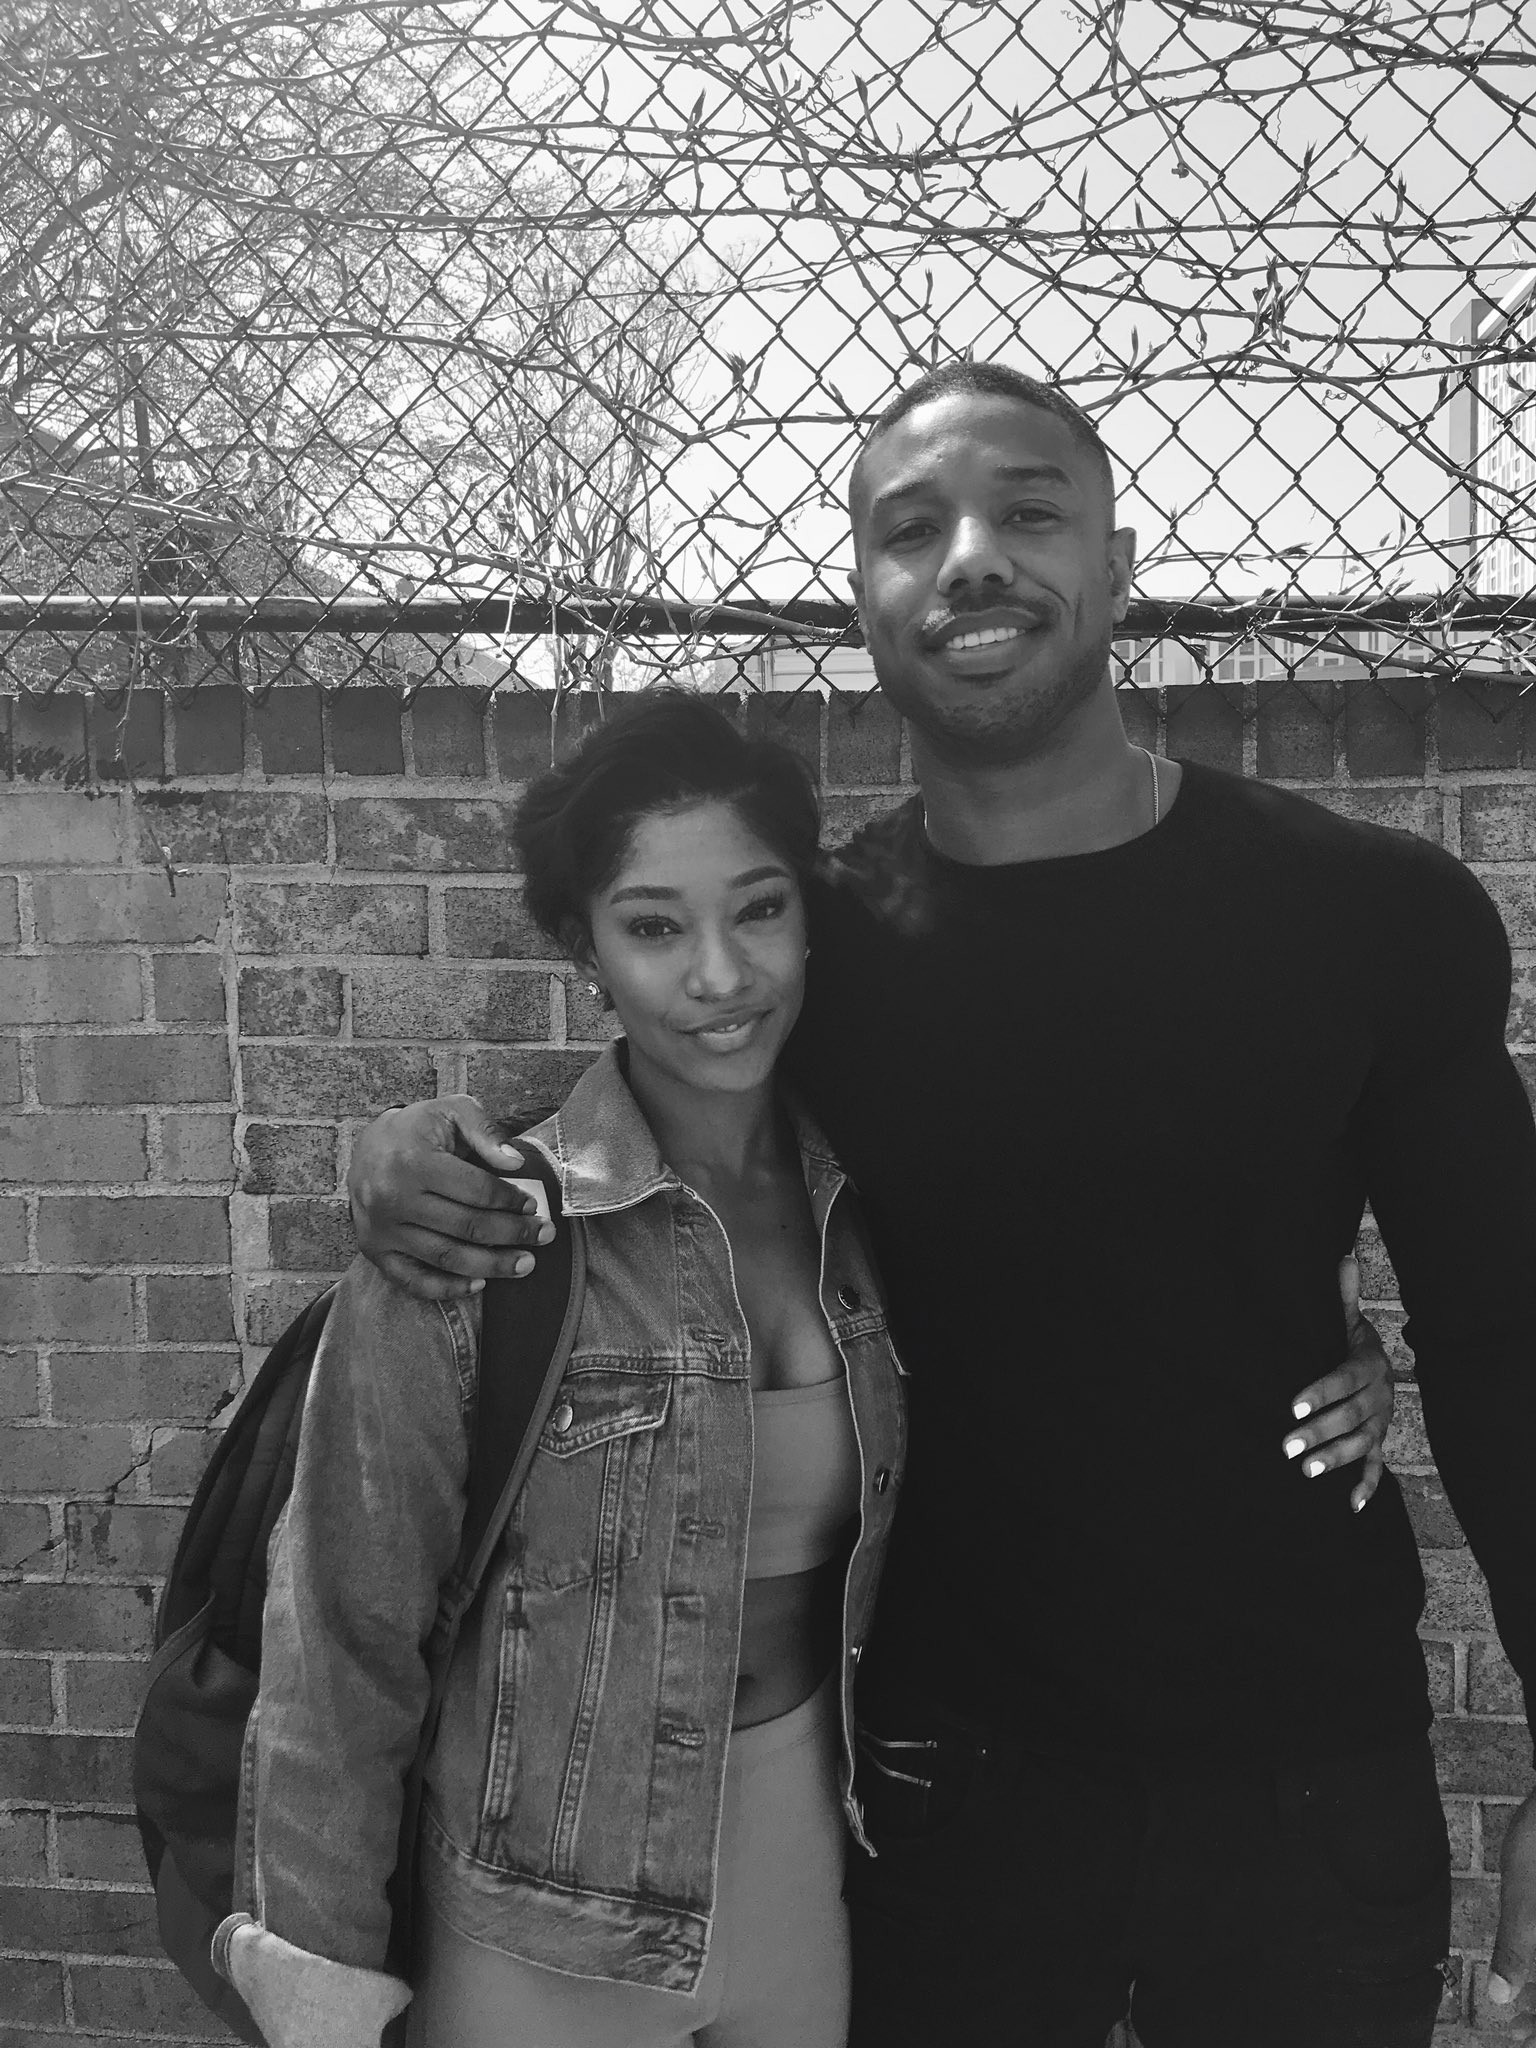 Lucky lady meets Michael B Jordan after sliding into his DM